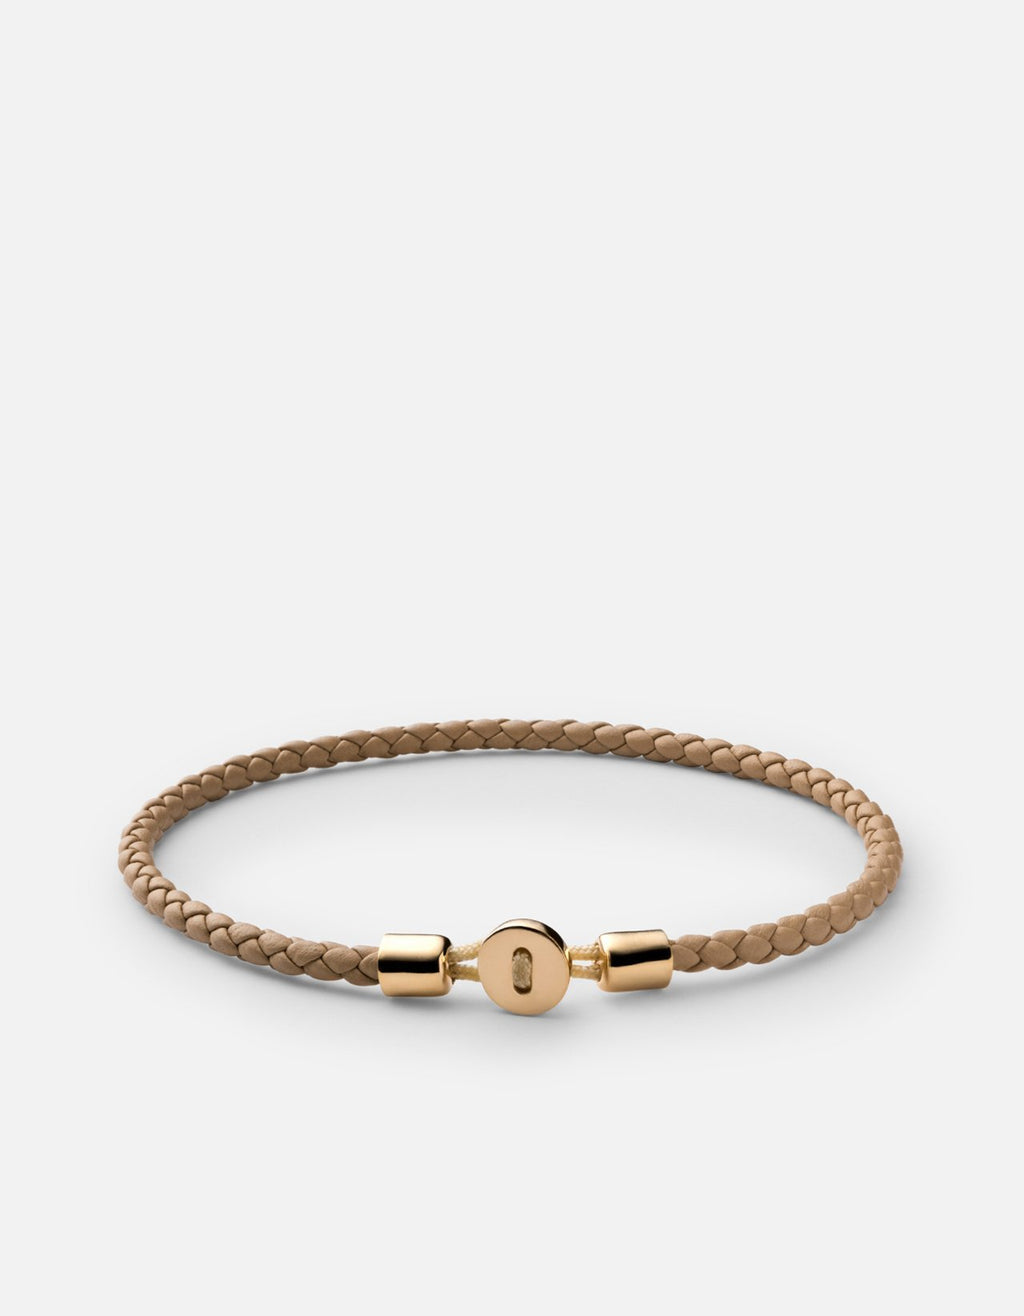 Miansai Nexus Leather Bracelet, Gold Vermeil, Polished Natural